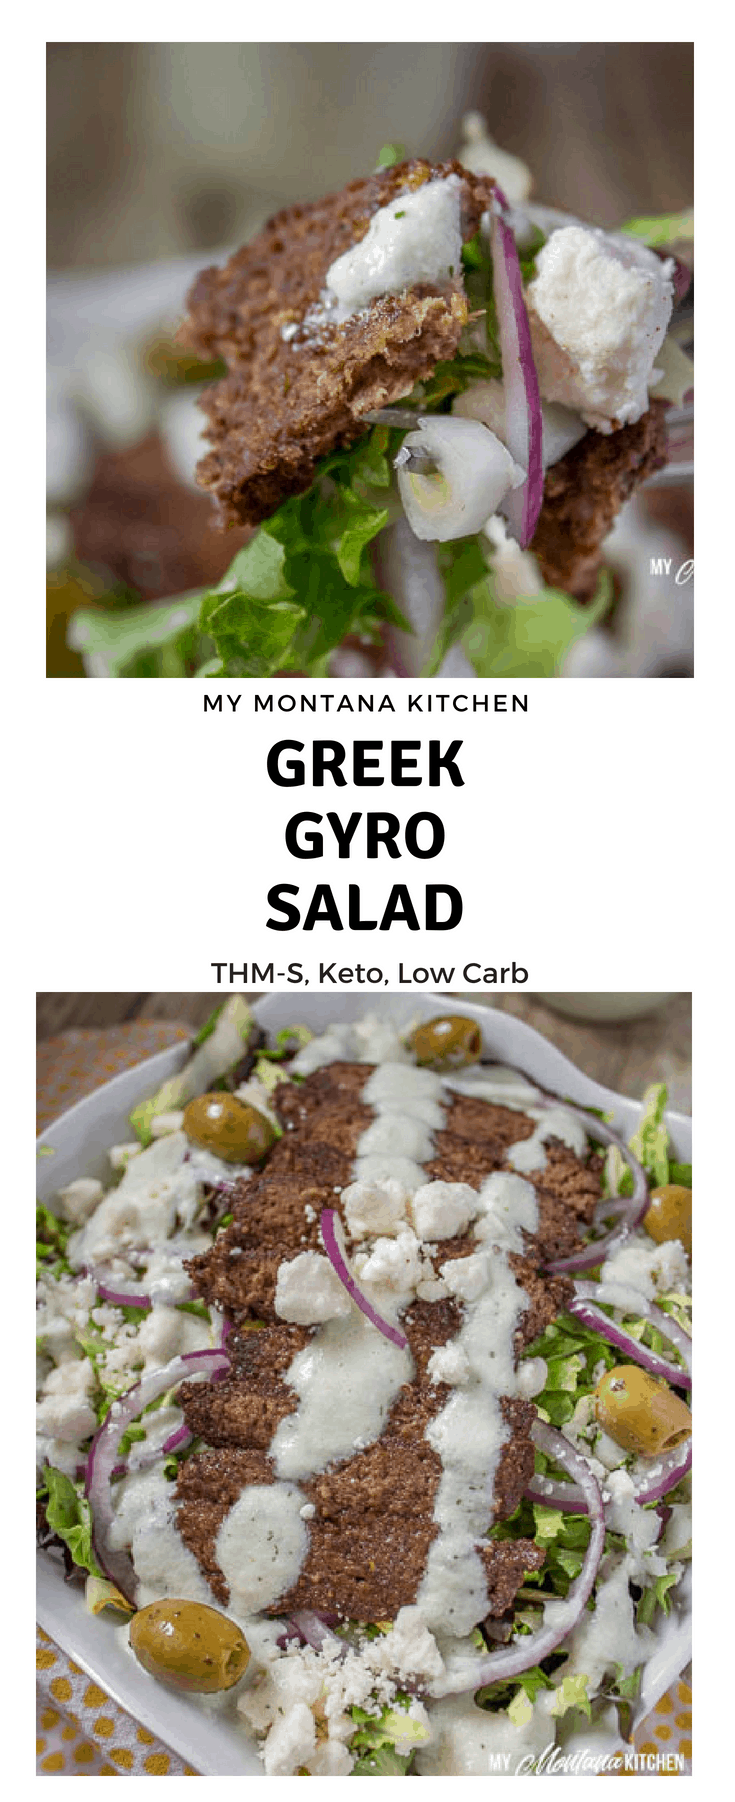 If you've been wondering how to make a Gyro Salad, look no further! This savory salad has all the flavor of Greek Gyros, and it makes a delicious healthy dinner! Even my kids loved this healthy entree! #trimhealthymama #thm #ketosalad #lowcarb #gyrosalad #greeksalad #greek